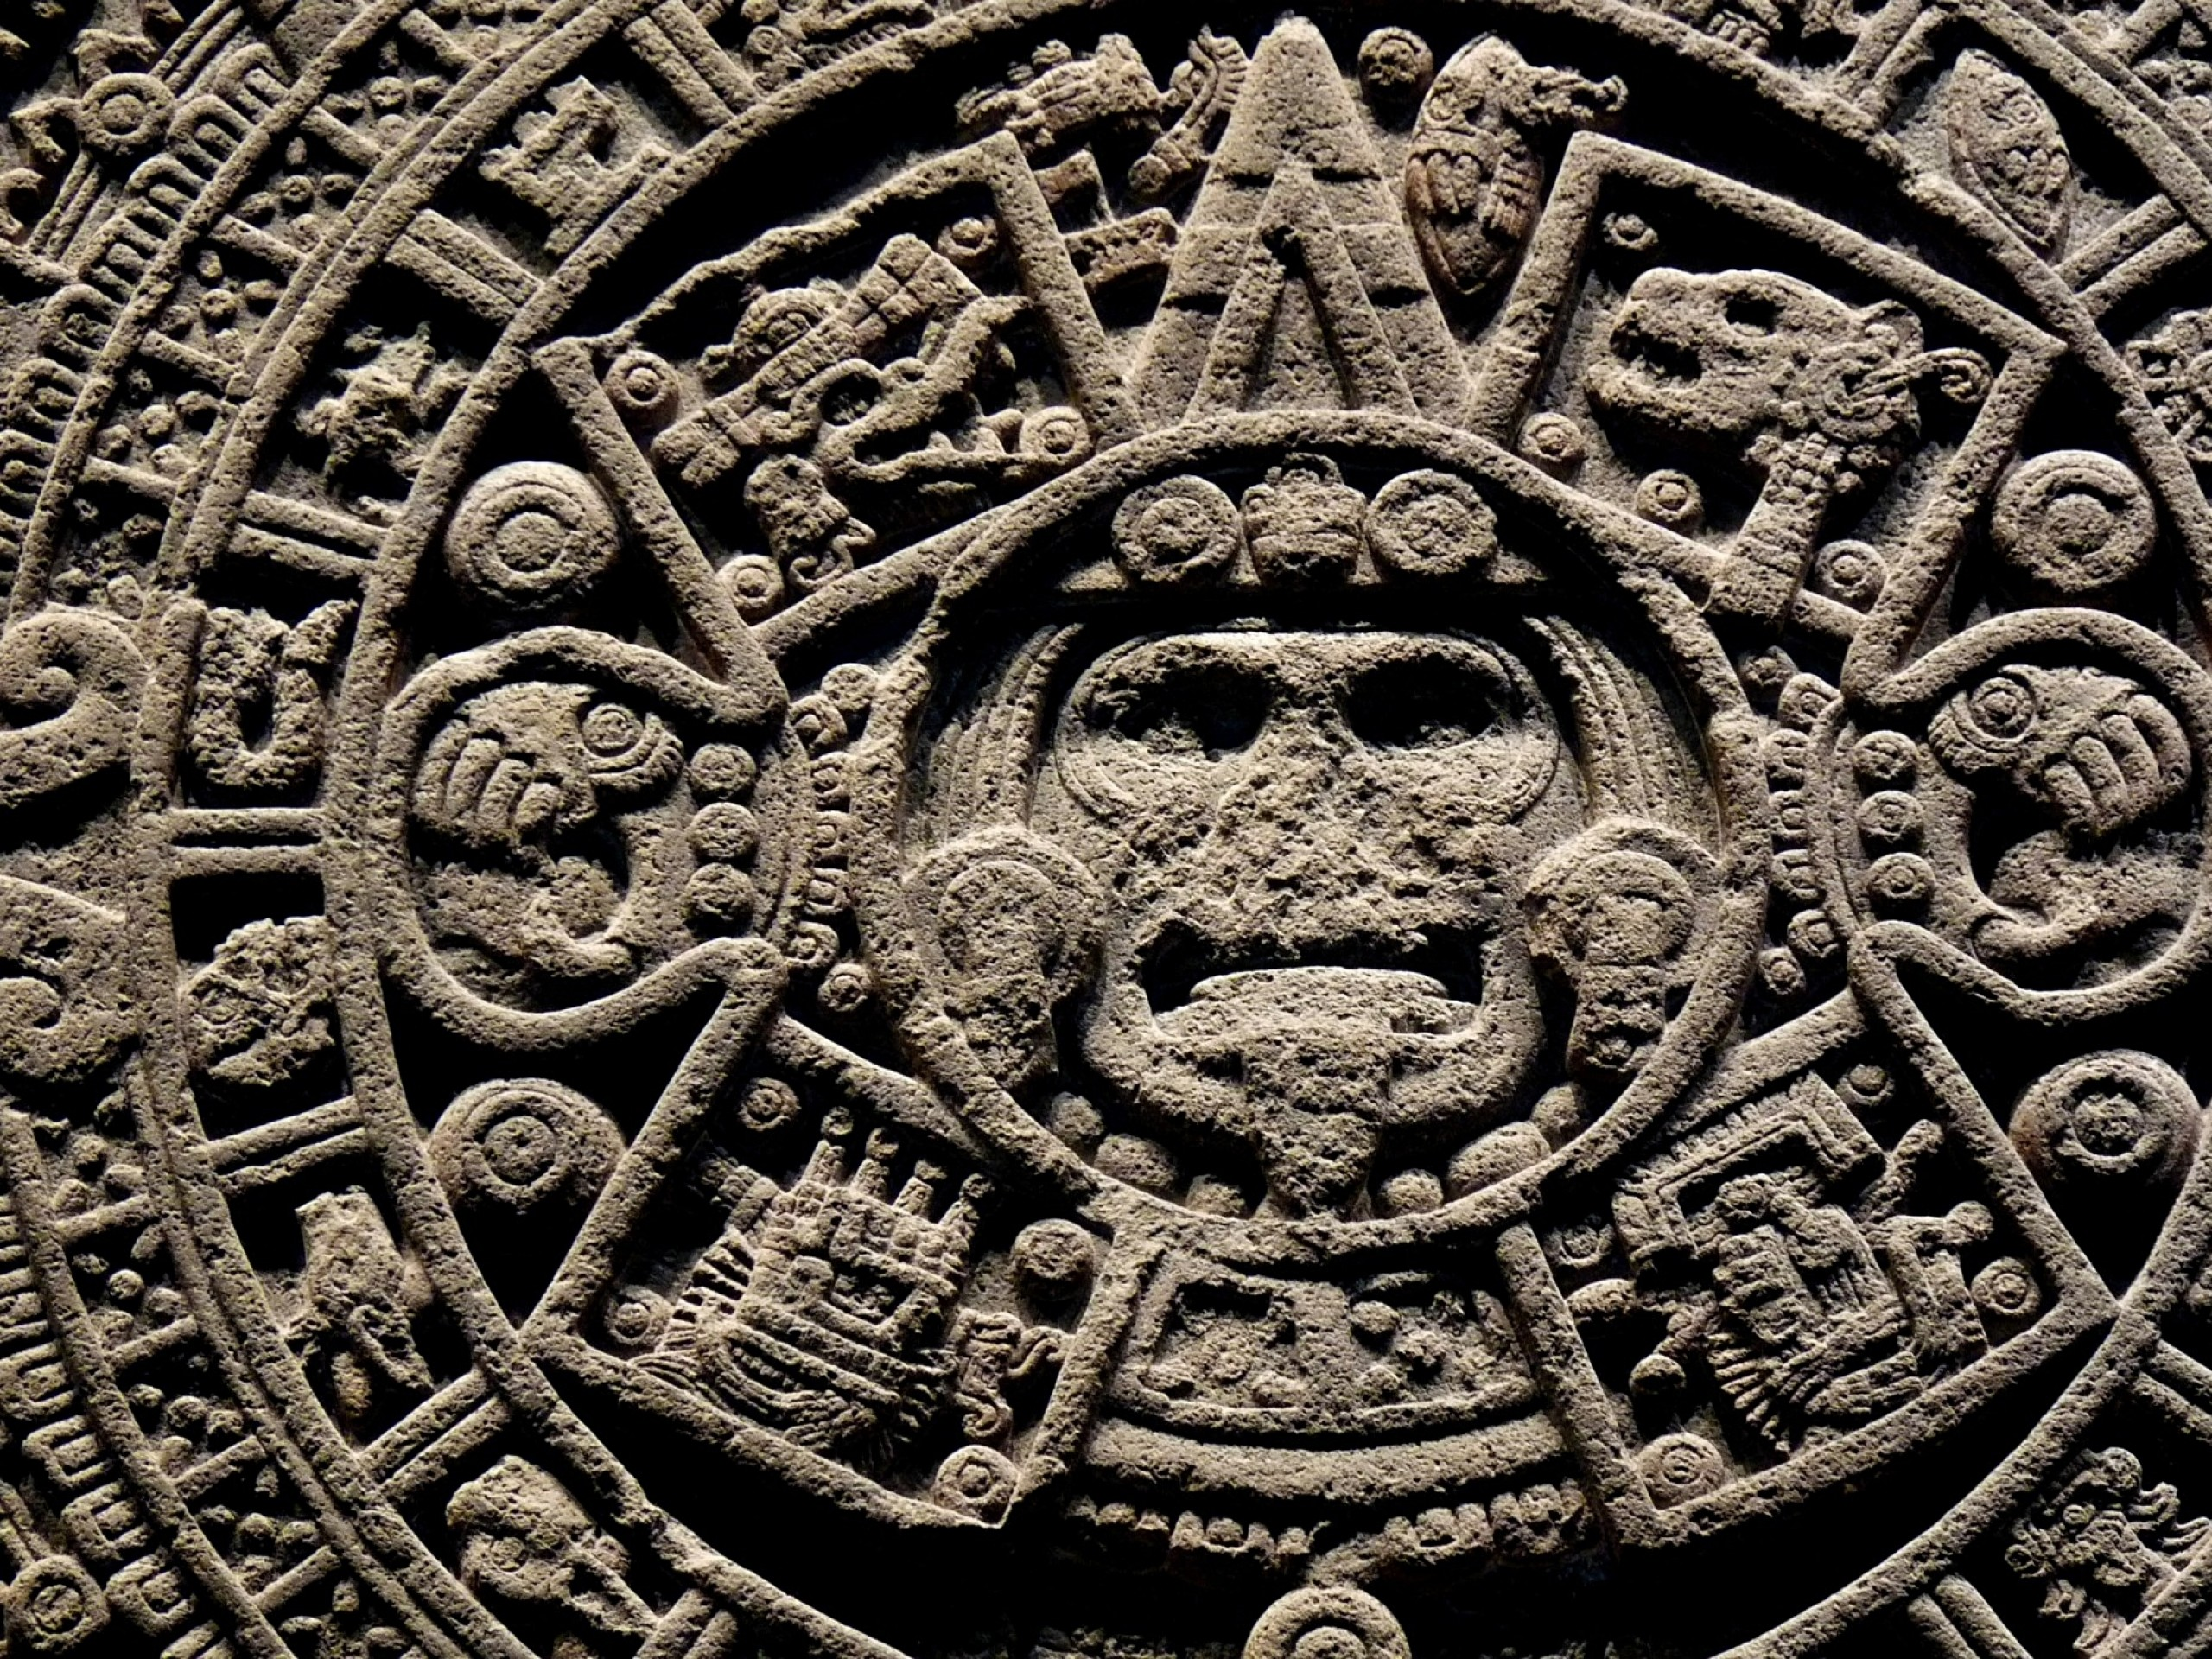 2560x1920 wallpaper.wiki-Aztec-Calendar-Wallpaper-for-Desktop-PIC-